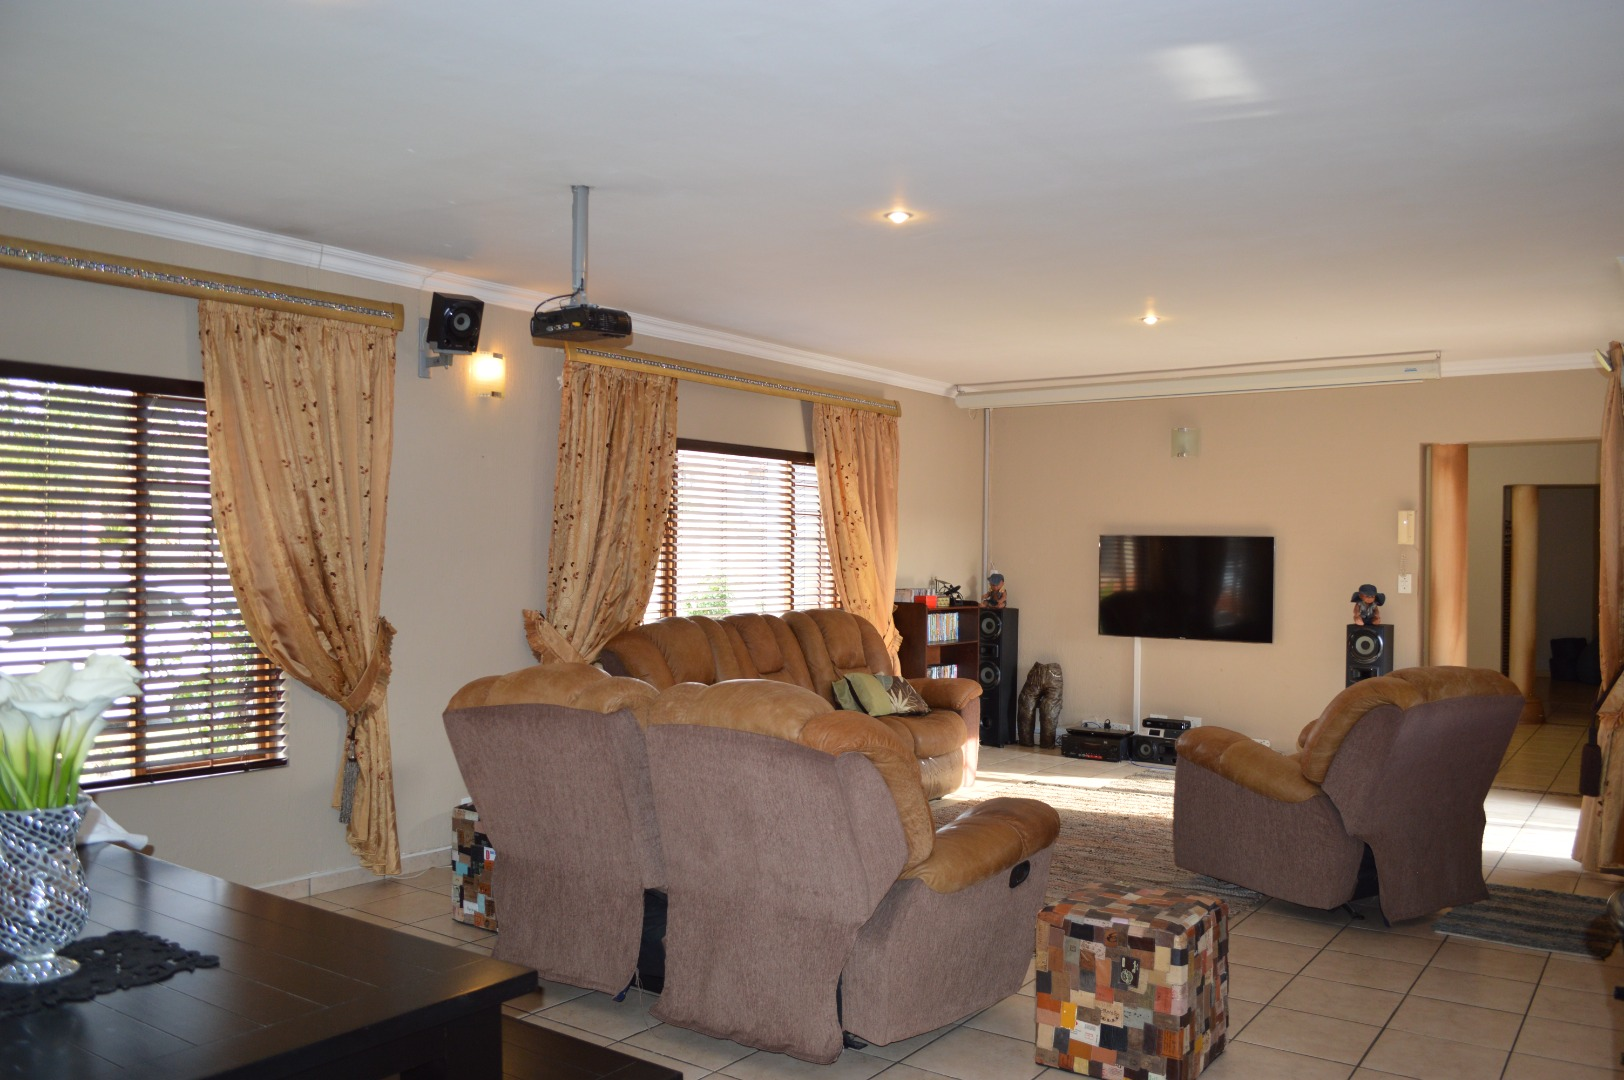 4 Bedroom House For Sale in Sonneveld